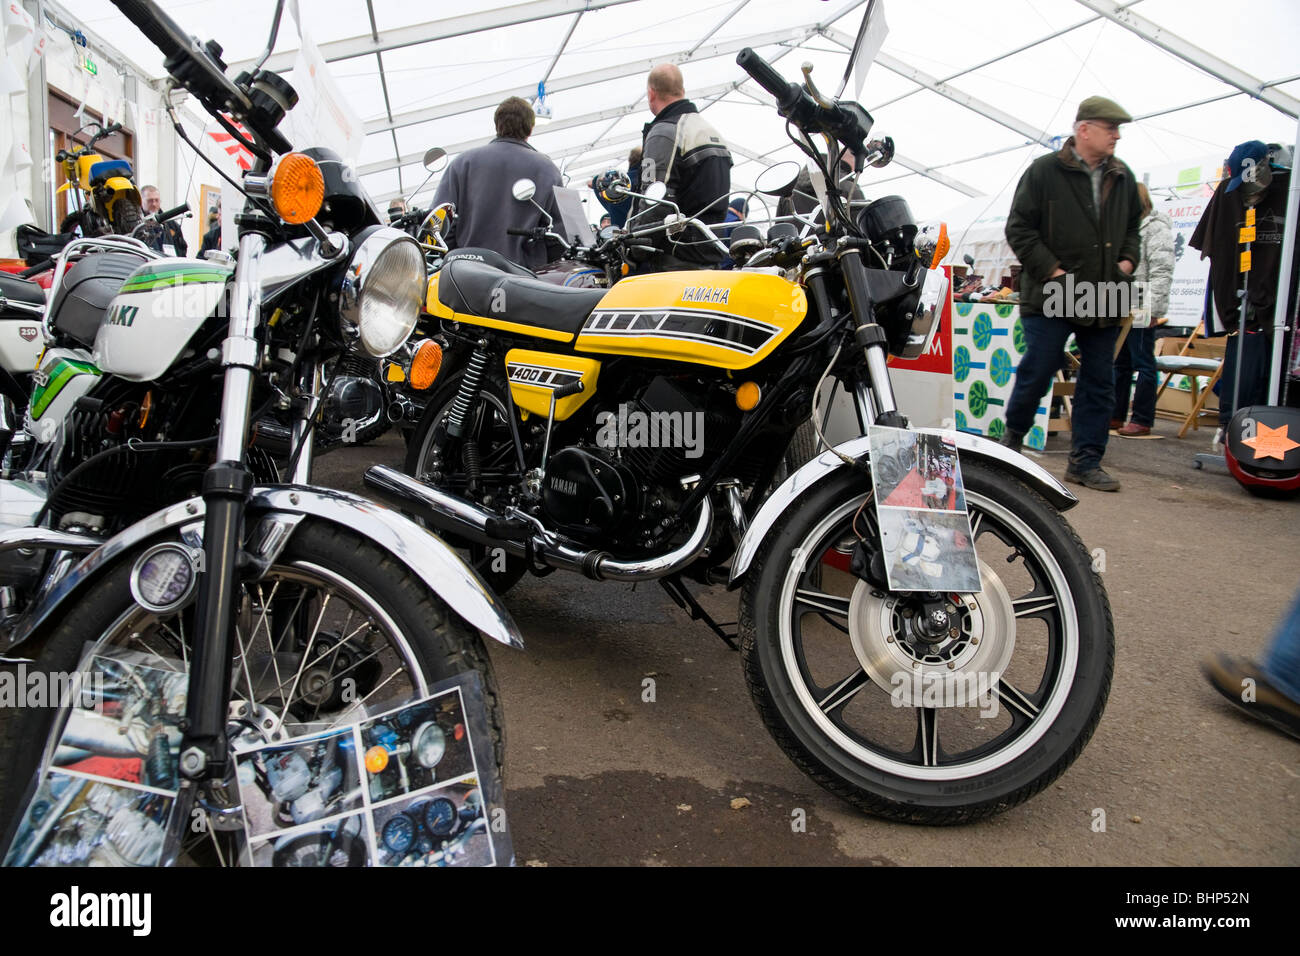 Yamaha Yellow Stock Photos & Yamaha Yellow Stock Images - Alamy